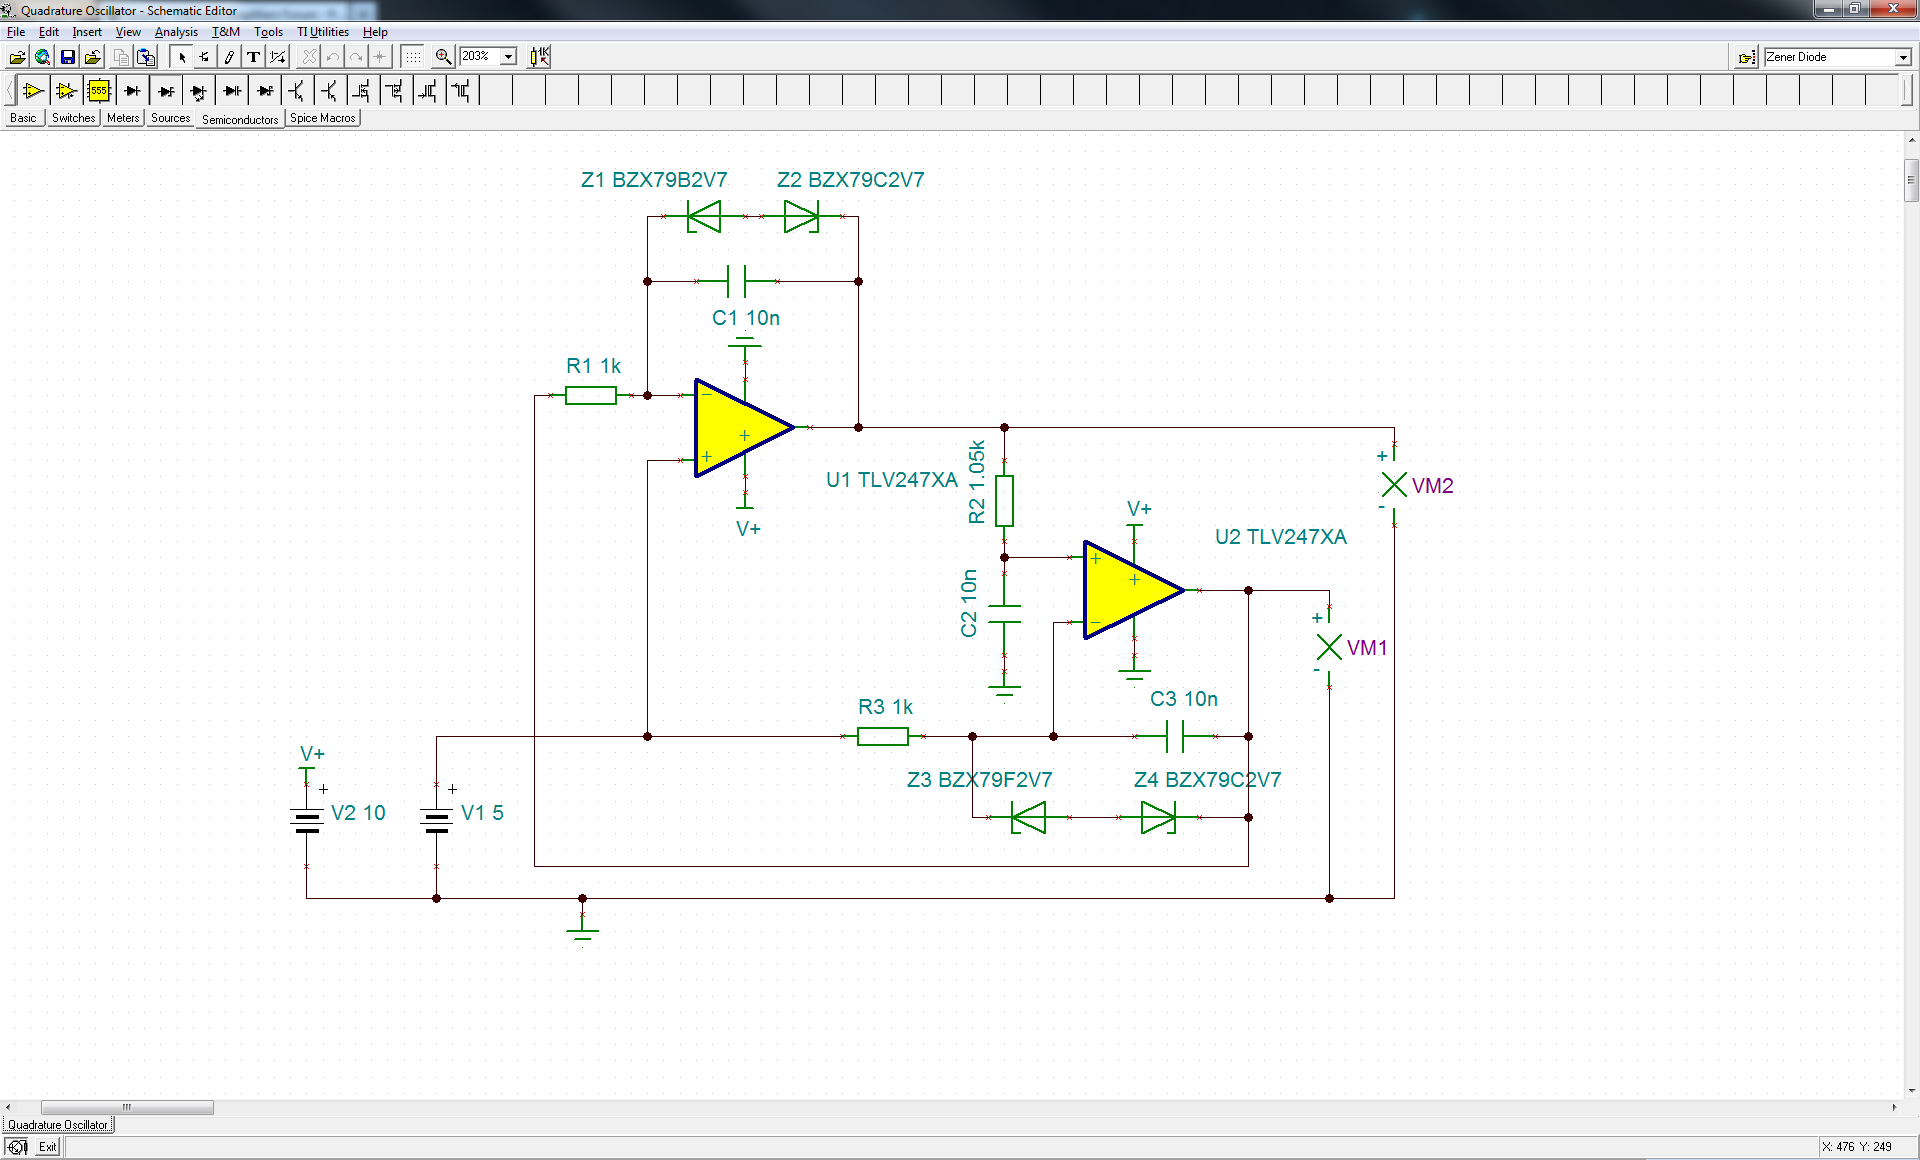 Quadrature Oscillator with TLV2474 - schematic